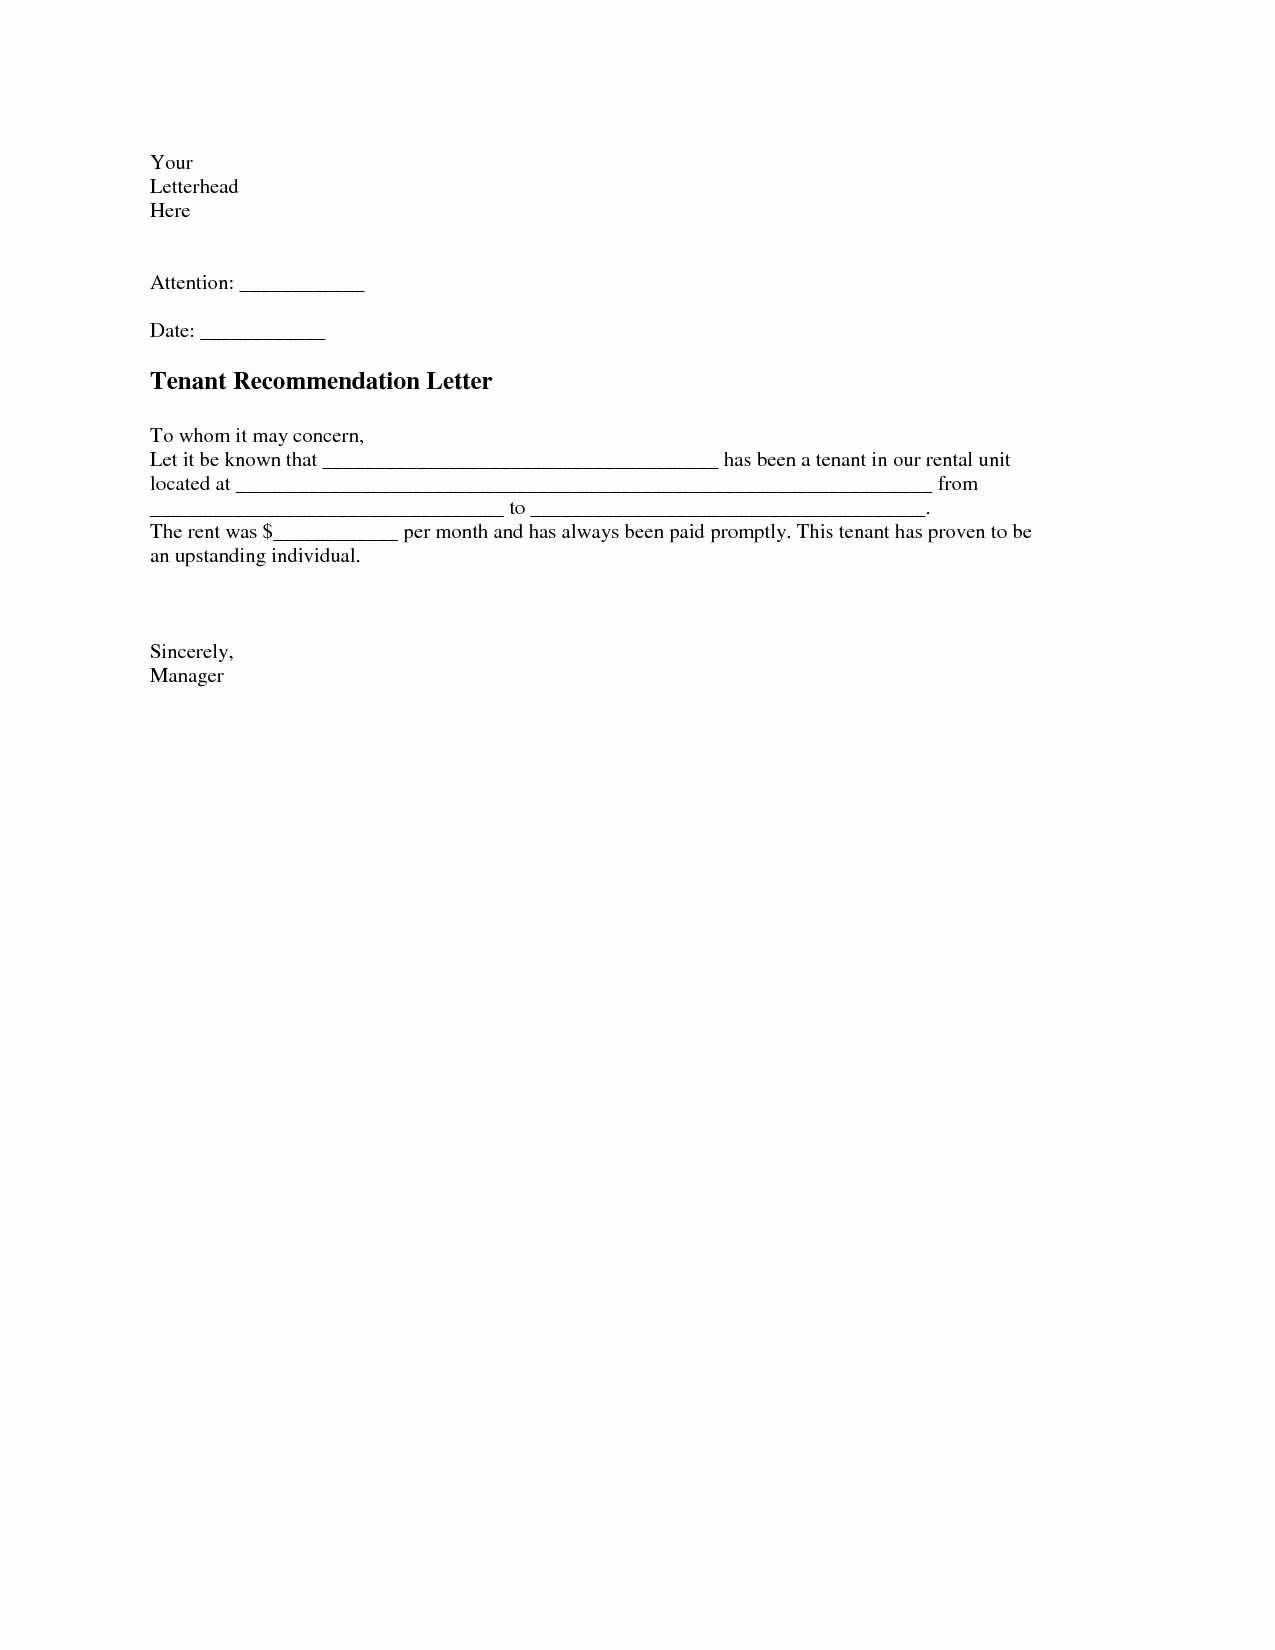 Personal Reference Letter for Apartment Lovely Tenant Re Mendation Letter A Tenant Re Mendation